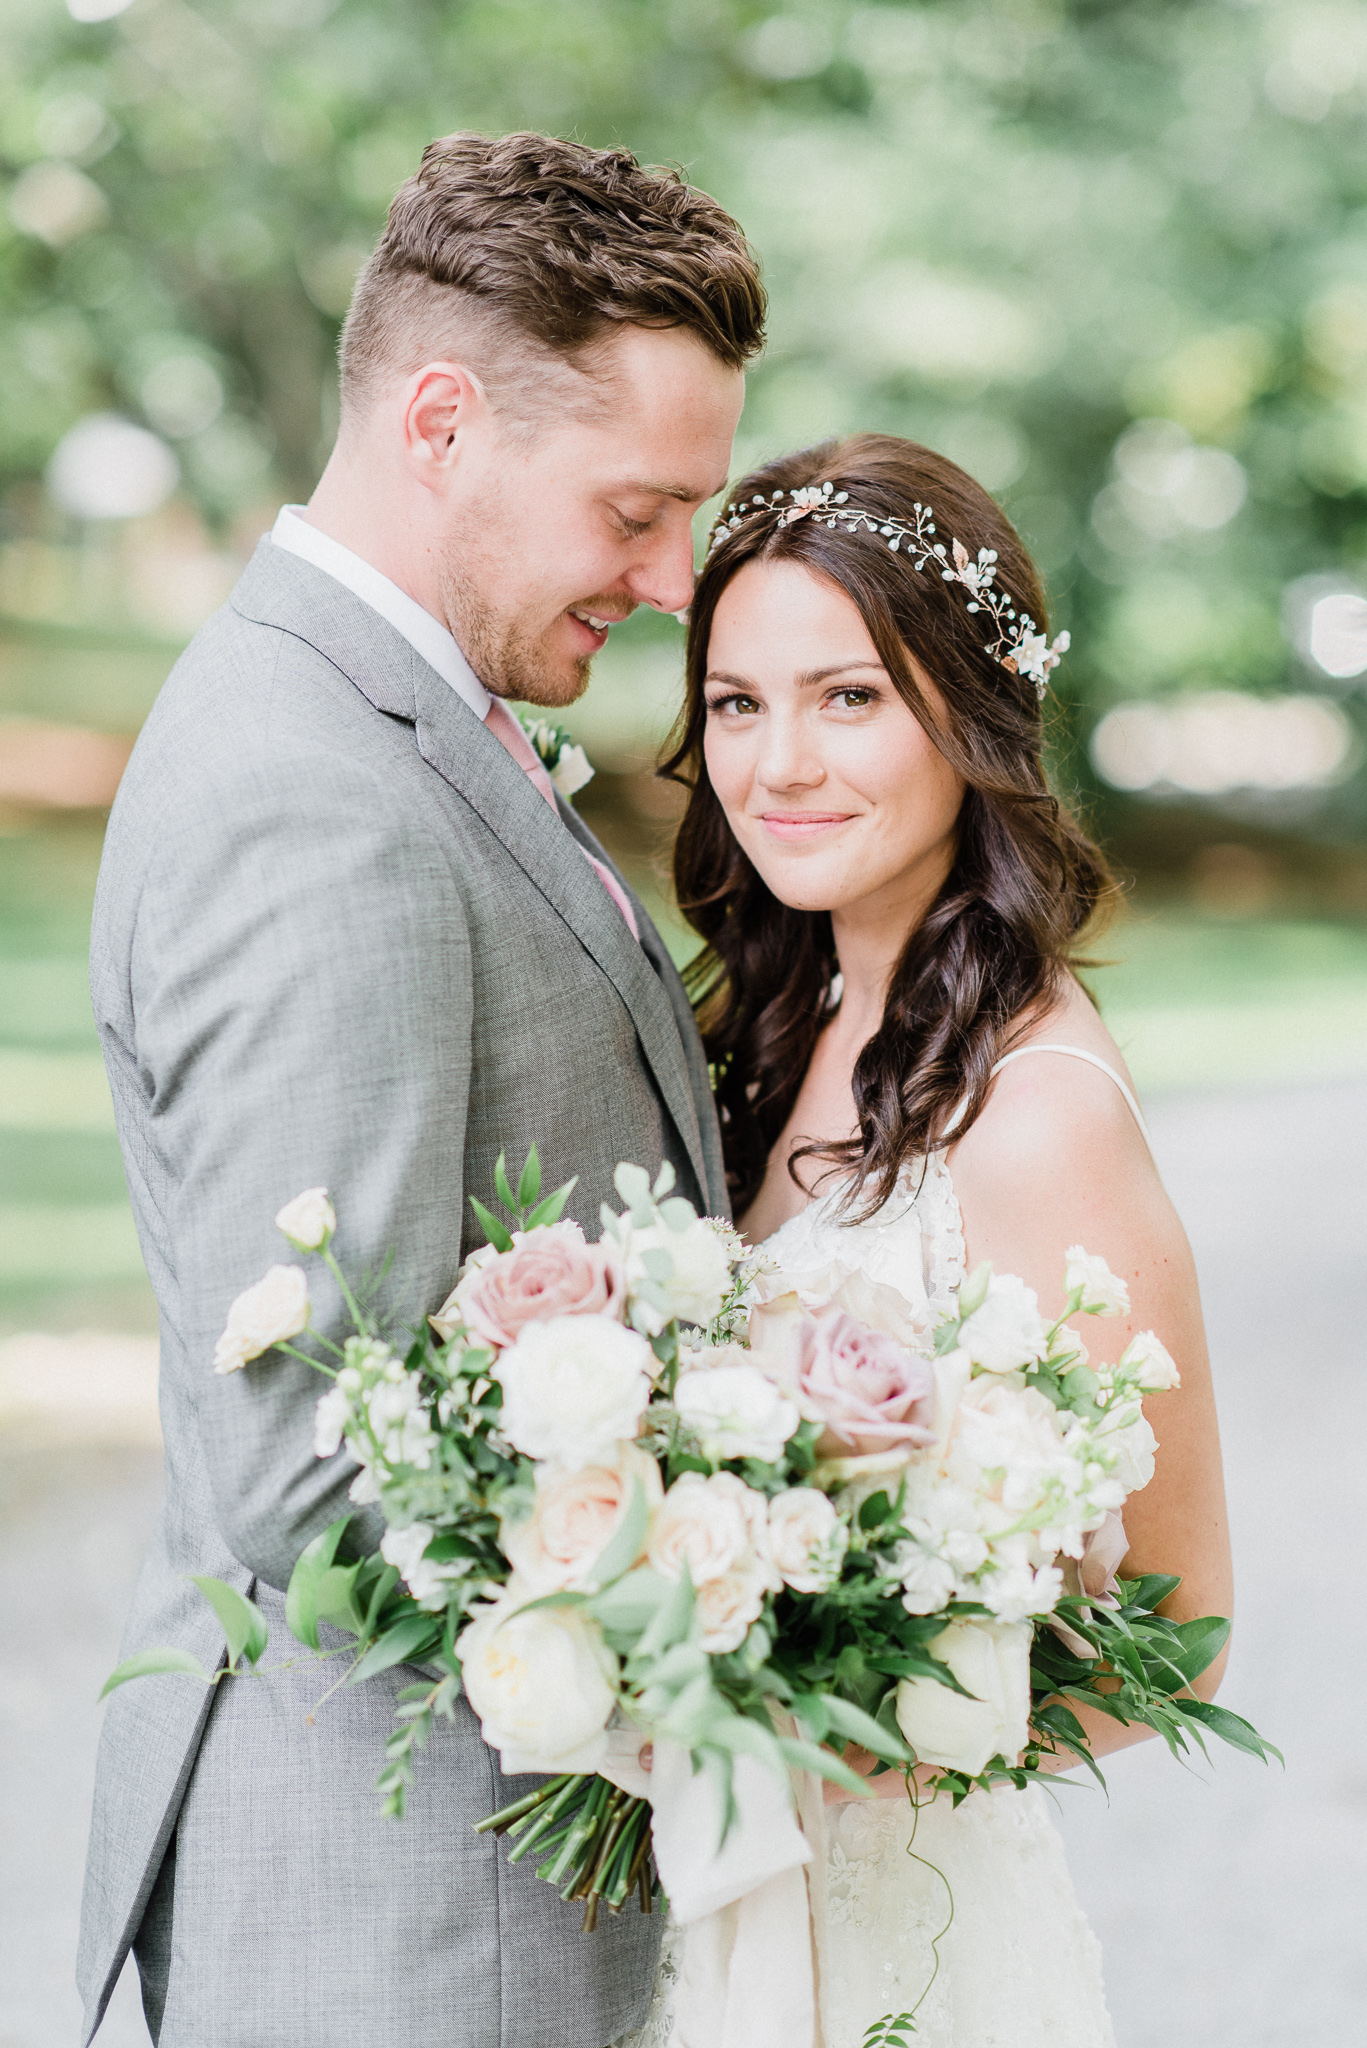 Blair Nadeau Bridal Adornments Frida Floral Bridal Hair Vine by Jenn Kavanagh Photography